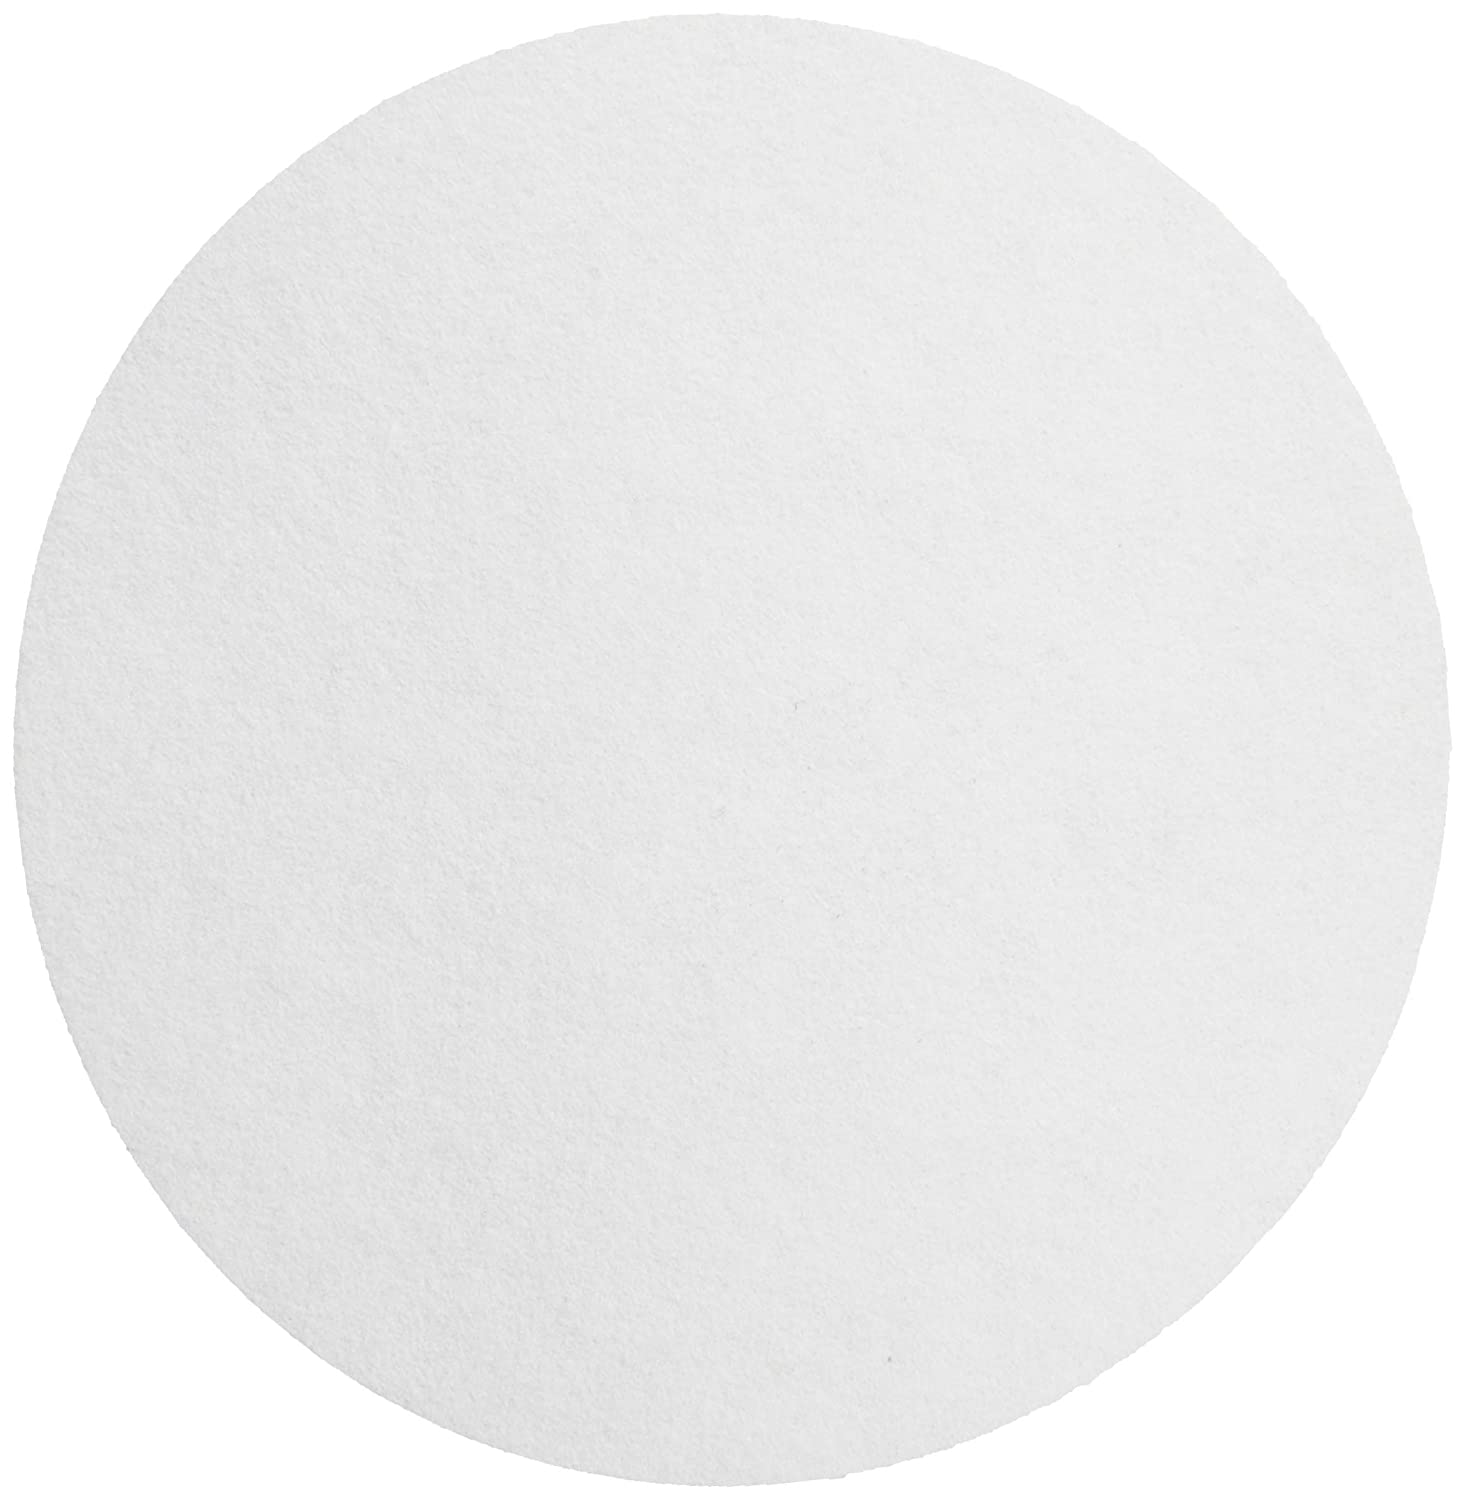 Whatman 1542090 Grade 542 Quantitative Filter Paper, Hardened Ash less, circle, 90 mm (Pack of 100) GE Healthcare F1257-4